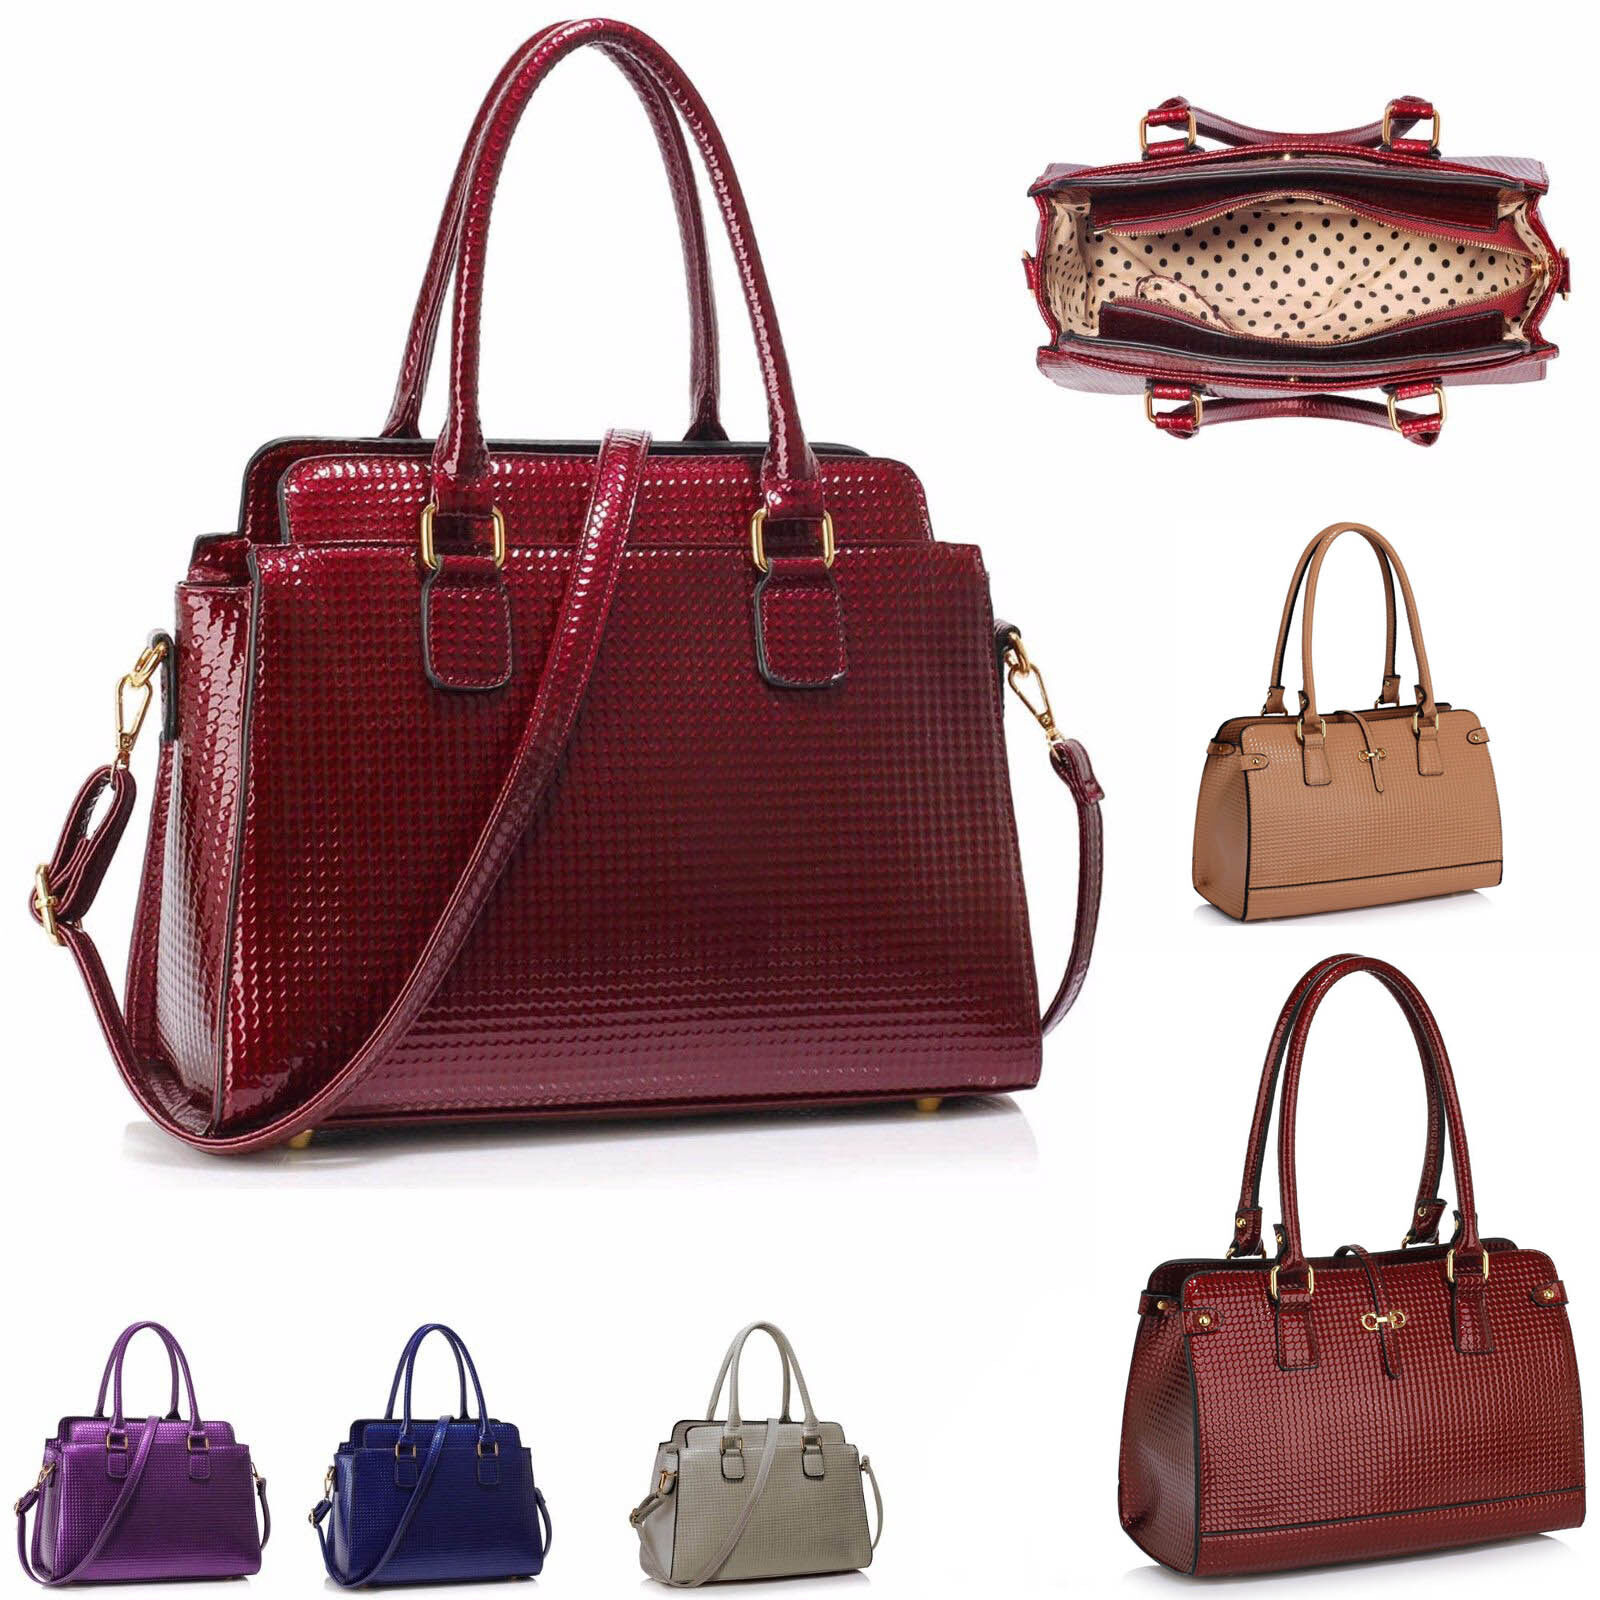 Women's Faux Leather Fashion Tote Shoulder Handbags Bags Top